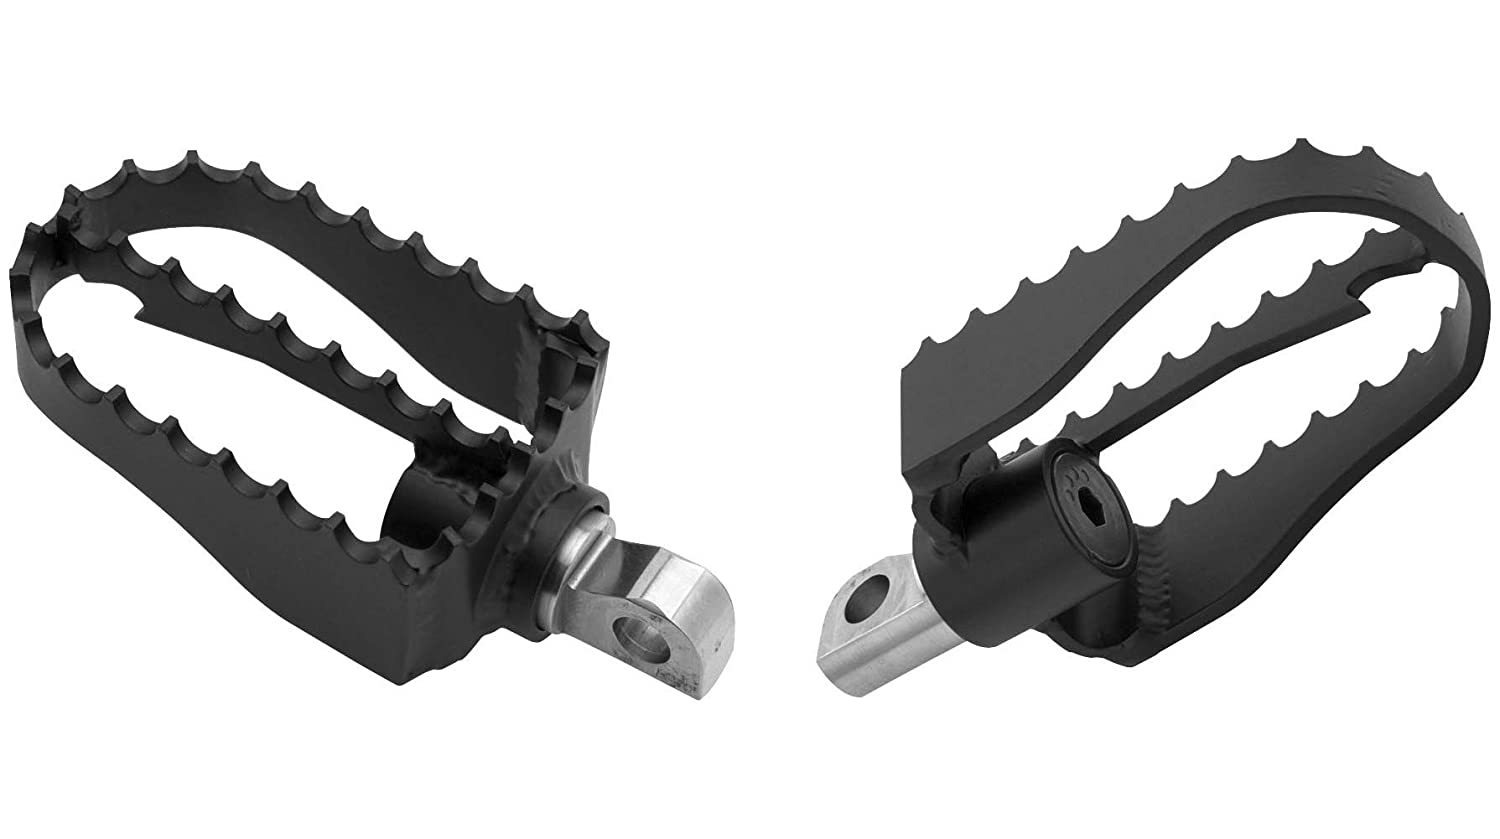 Progressive Suspension MX Style Footpegs B13-1000 Burly Brand tr-070675